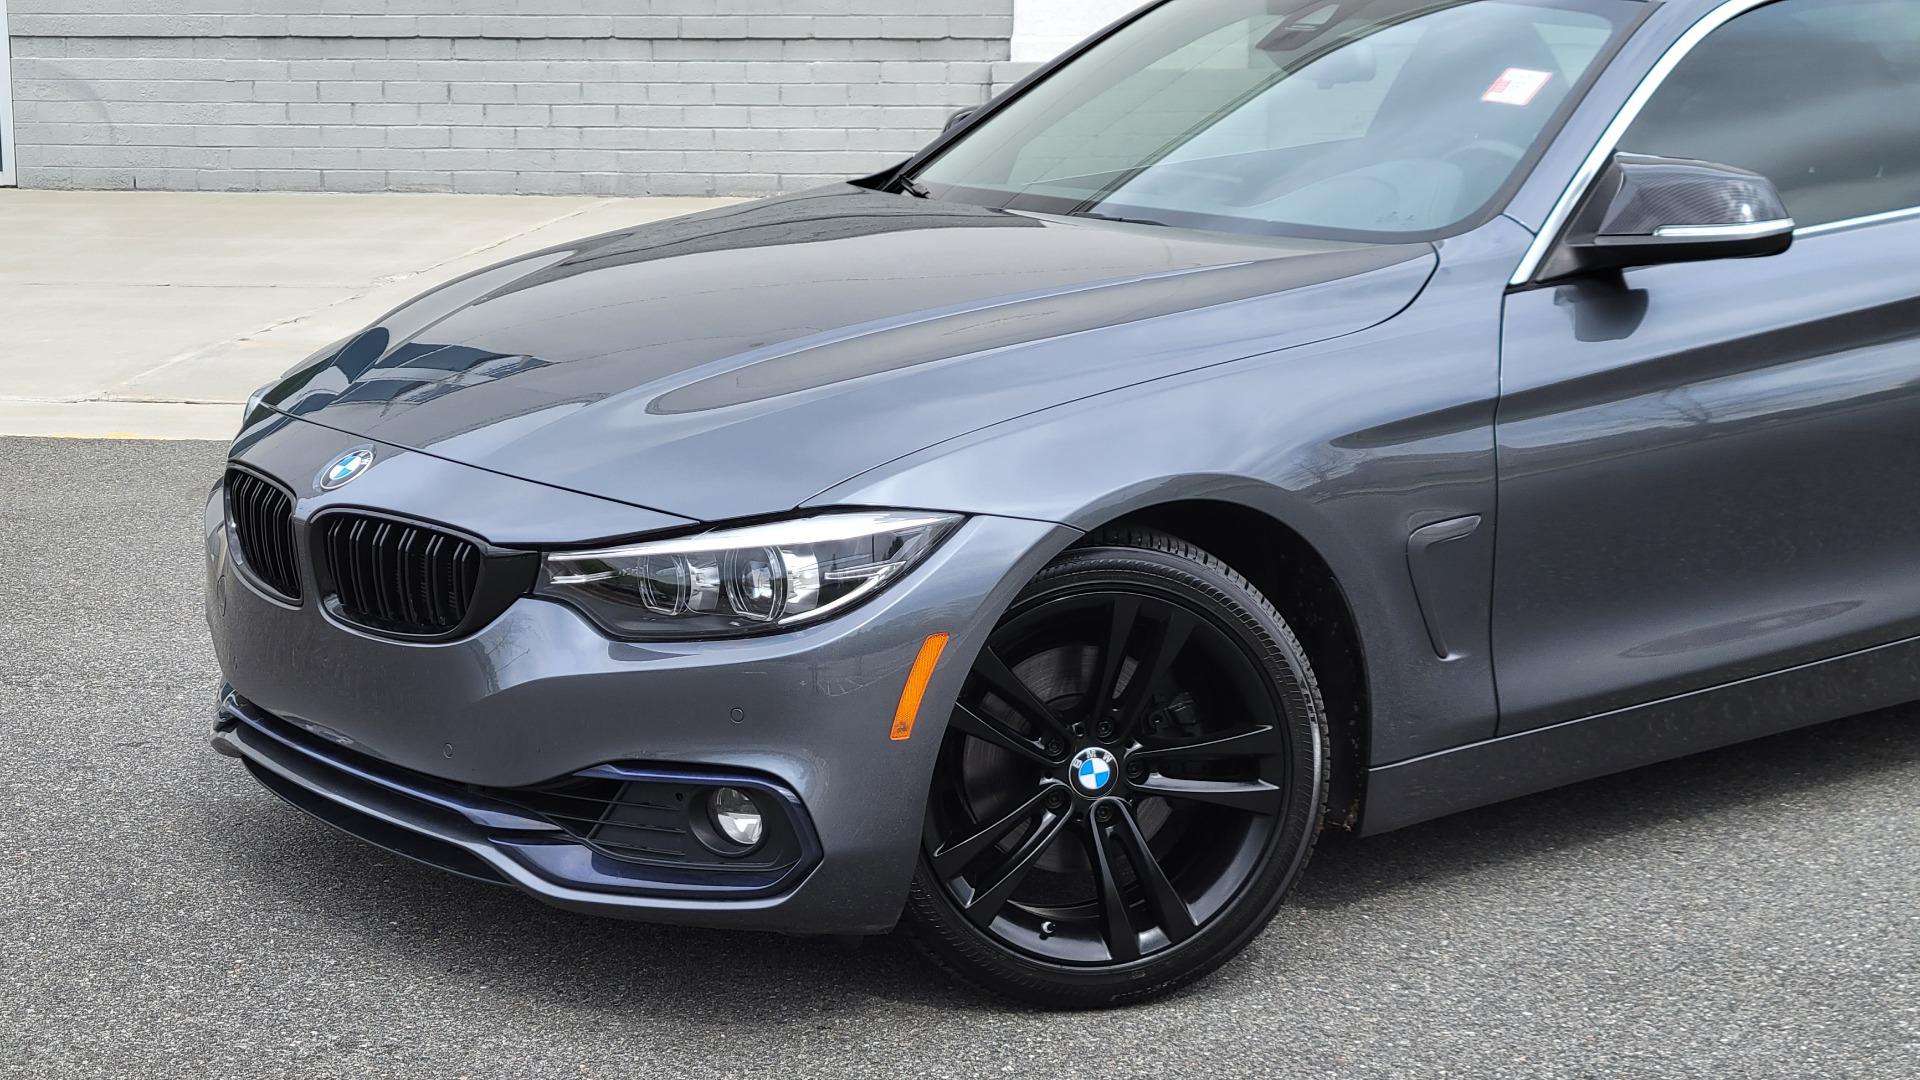 Used 2019 BMW 4 SERIES 430I COUPE 2.0L / RWD / DRVR ASST / CONV PKG / SUNROOF / REARVIEW for sale $32,295 at Formula Imports in Charlotte NC 28227 13